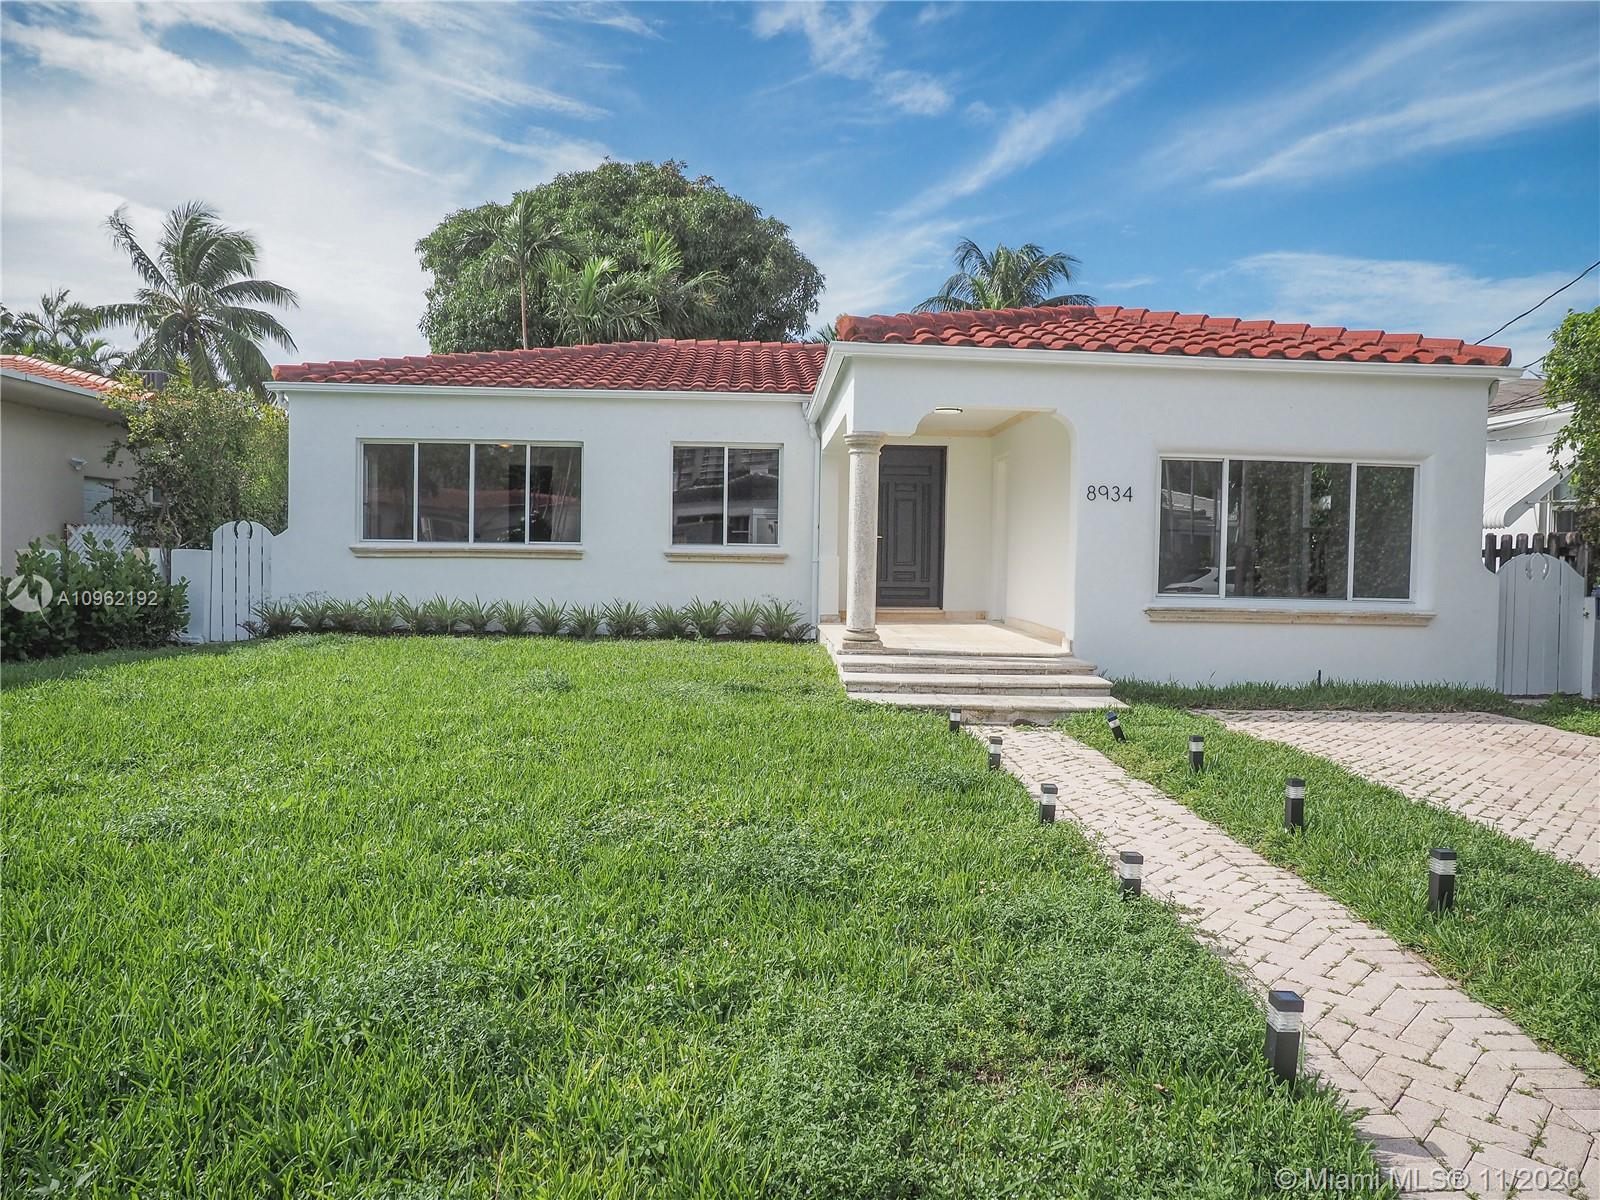 Renovated 5 bedroom 4 bath home on quiet street in Surfside. This home features an open kitchen with